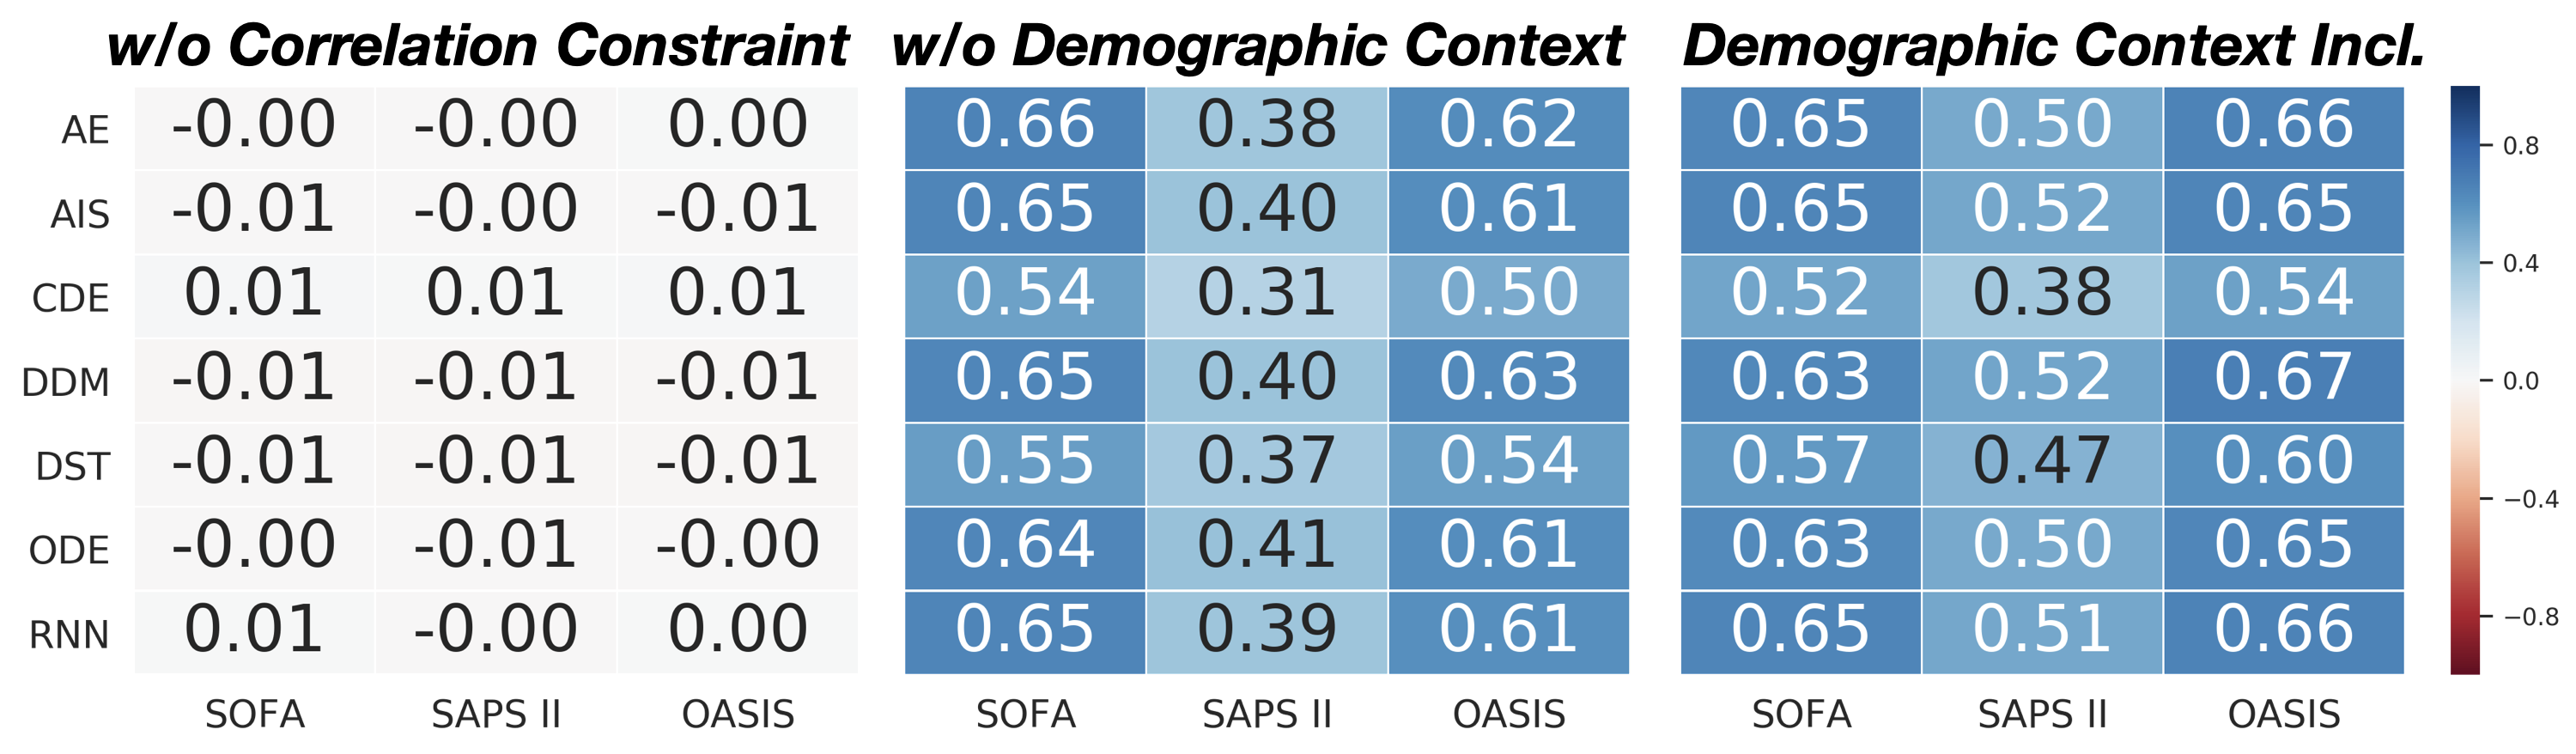 The average Pearson correlation coefficient between the state representations from each encoding approach and acuity scores. Shown here are the average coefficients when the representation learning process is unregularized (left), when demographic features are omitted (center) or are included (right). The inclusion of demographic features when constructing the state representations causes them to be more correlated. When the state representations are uncoorelated. They fail to embed information directly correlated with the derived acuity scores.